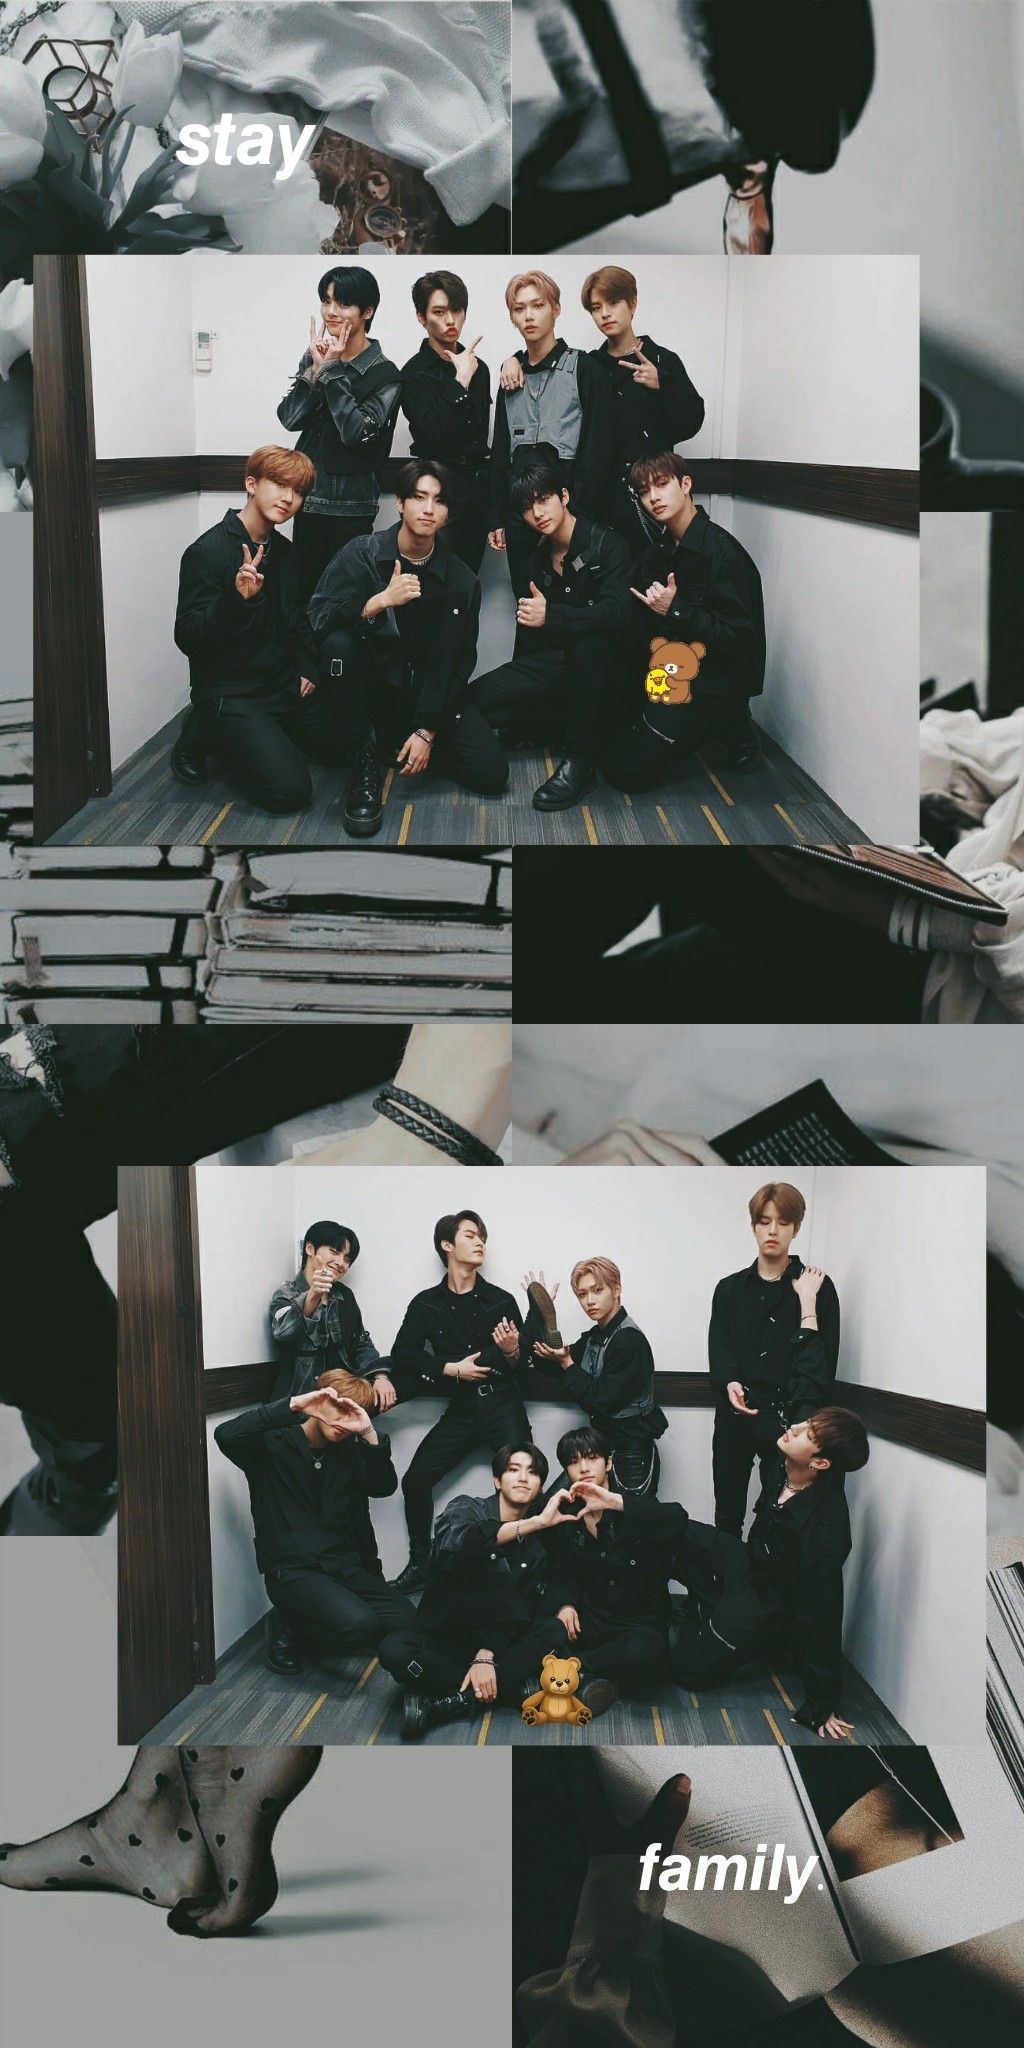 Stray Kids Wallpaper Aesthetic Ot8 First Photo Stay Whoever Read This Stay Strong We Have To Give Them More Strength I L Wallpaper Ponsel Gambar Artis